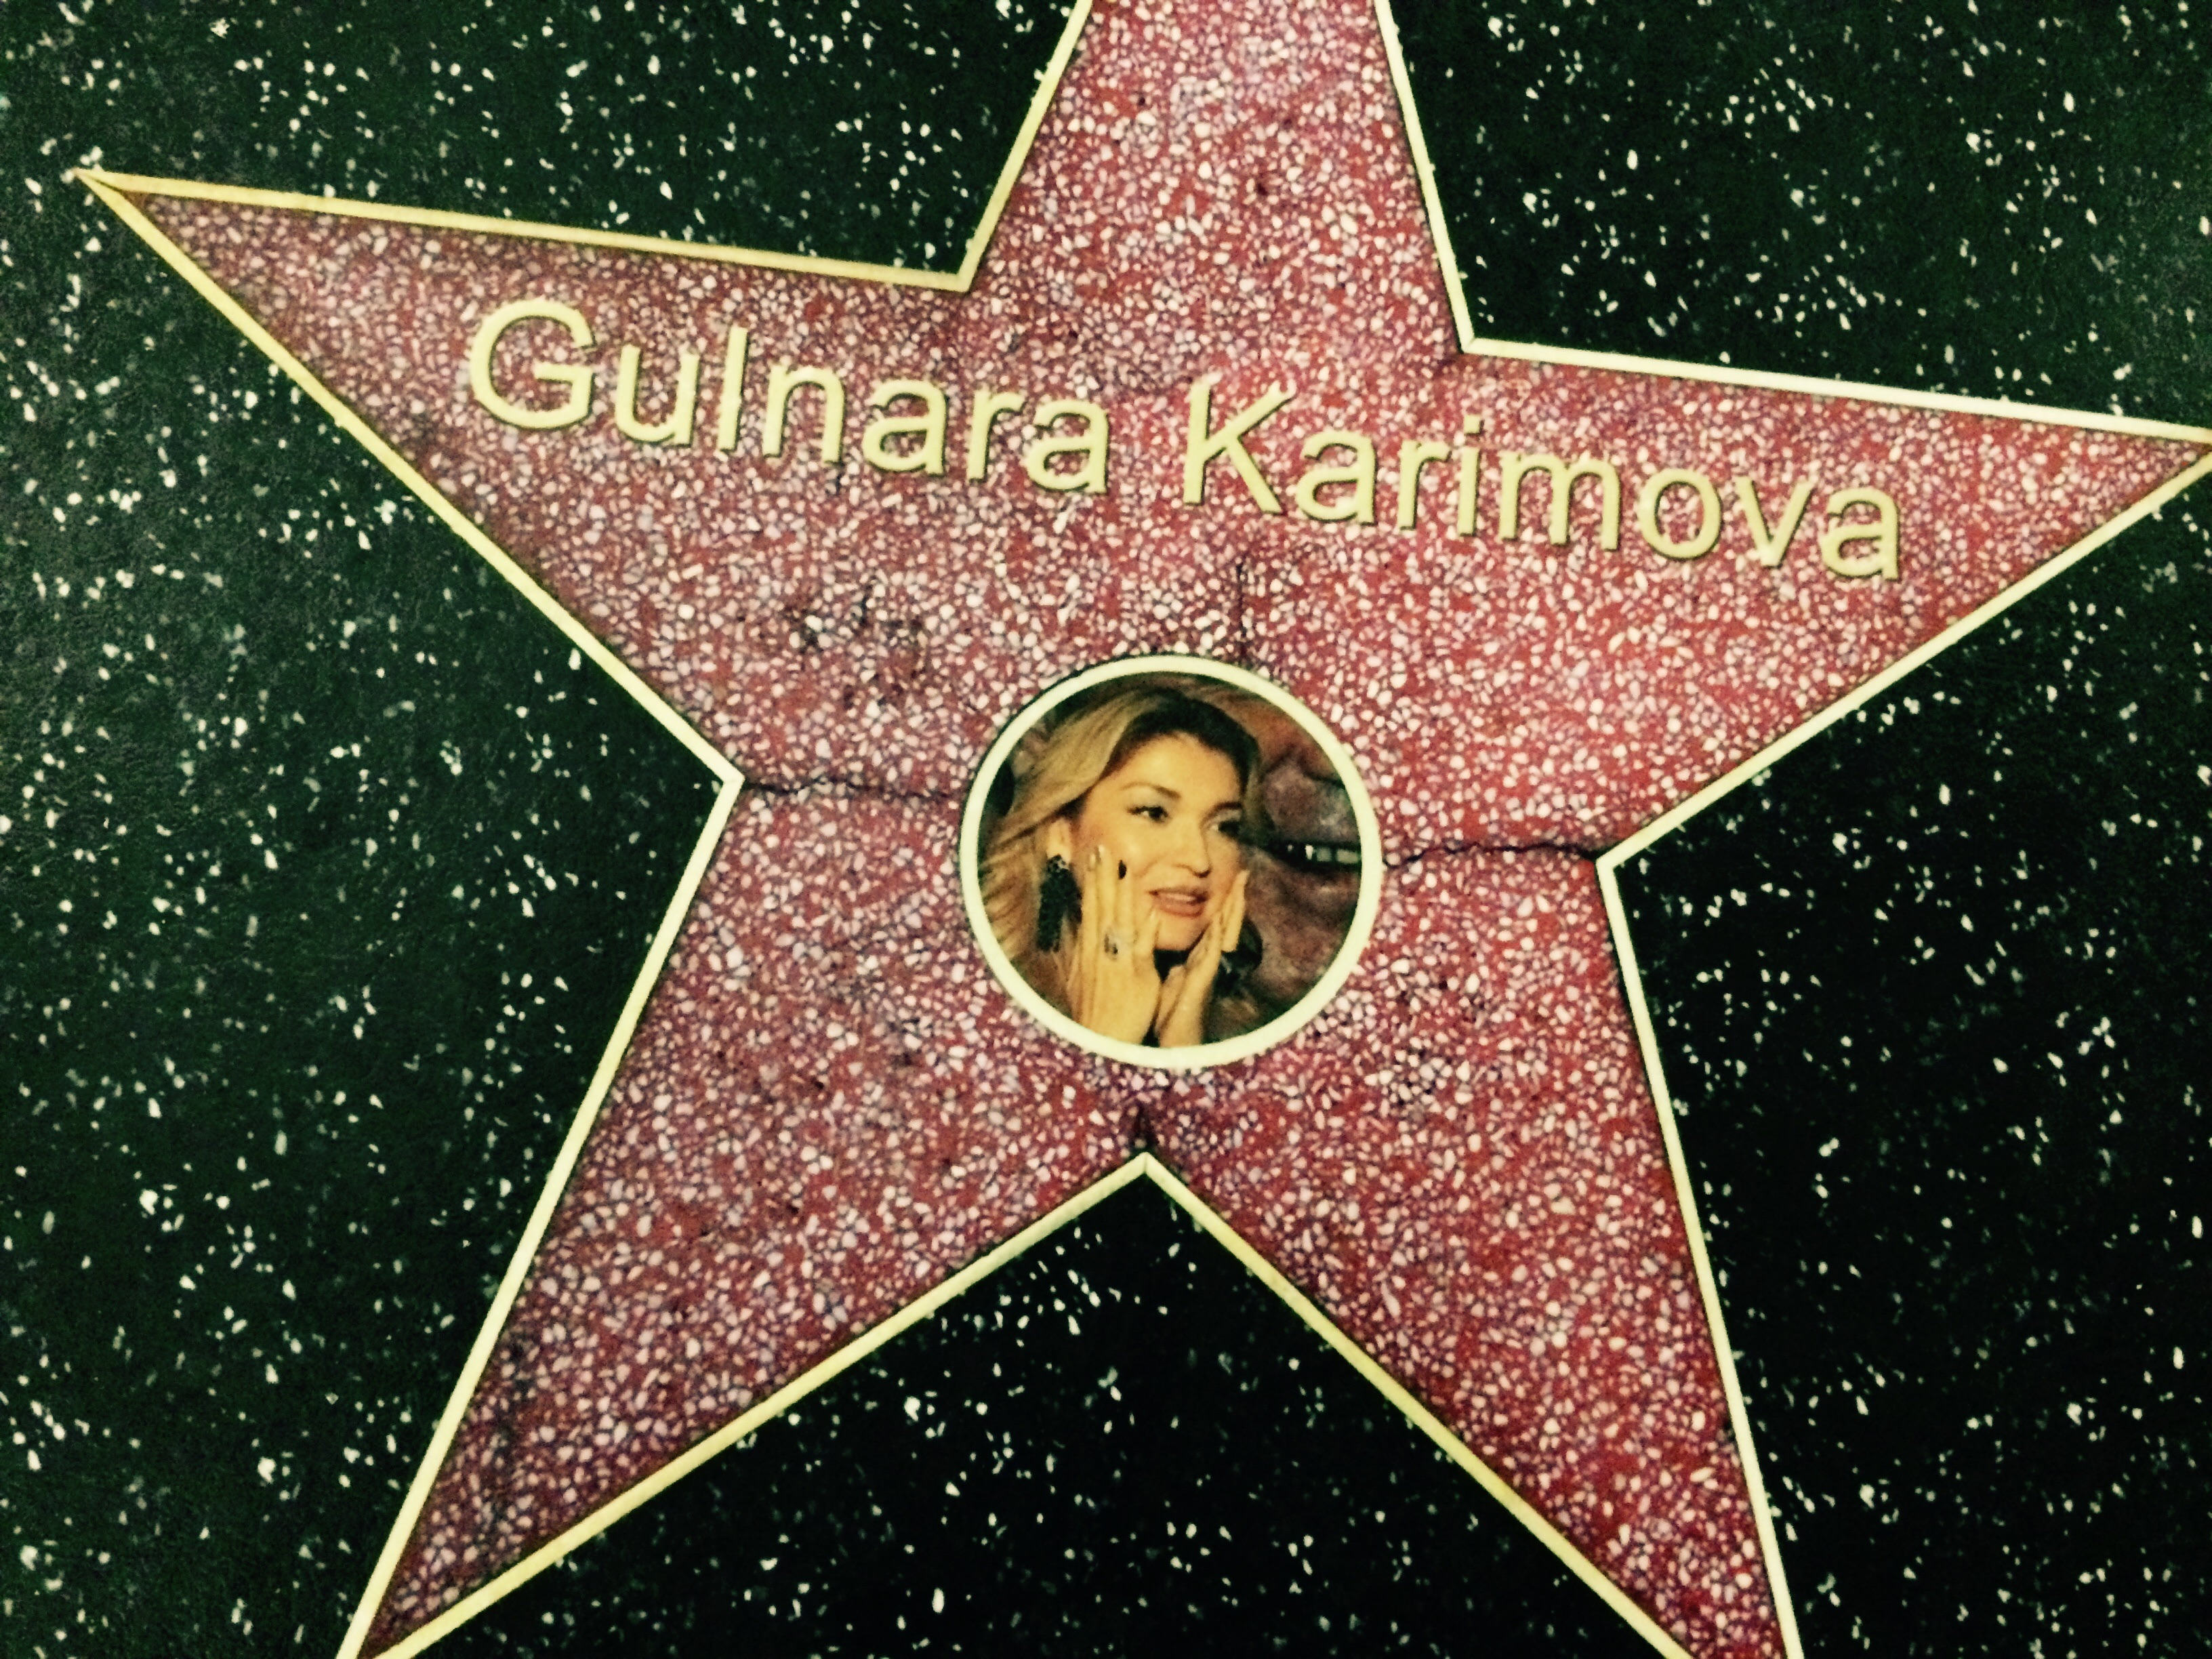 Gulnara Karimova Prosecution – Welcome to a House of Mirrors